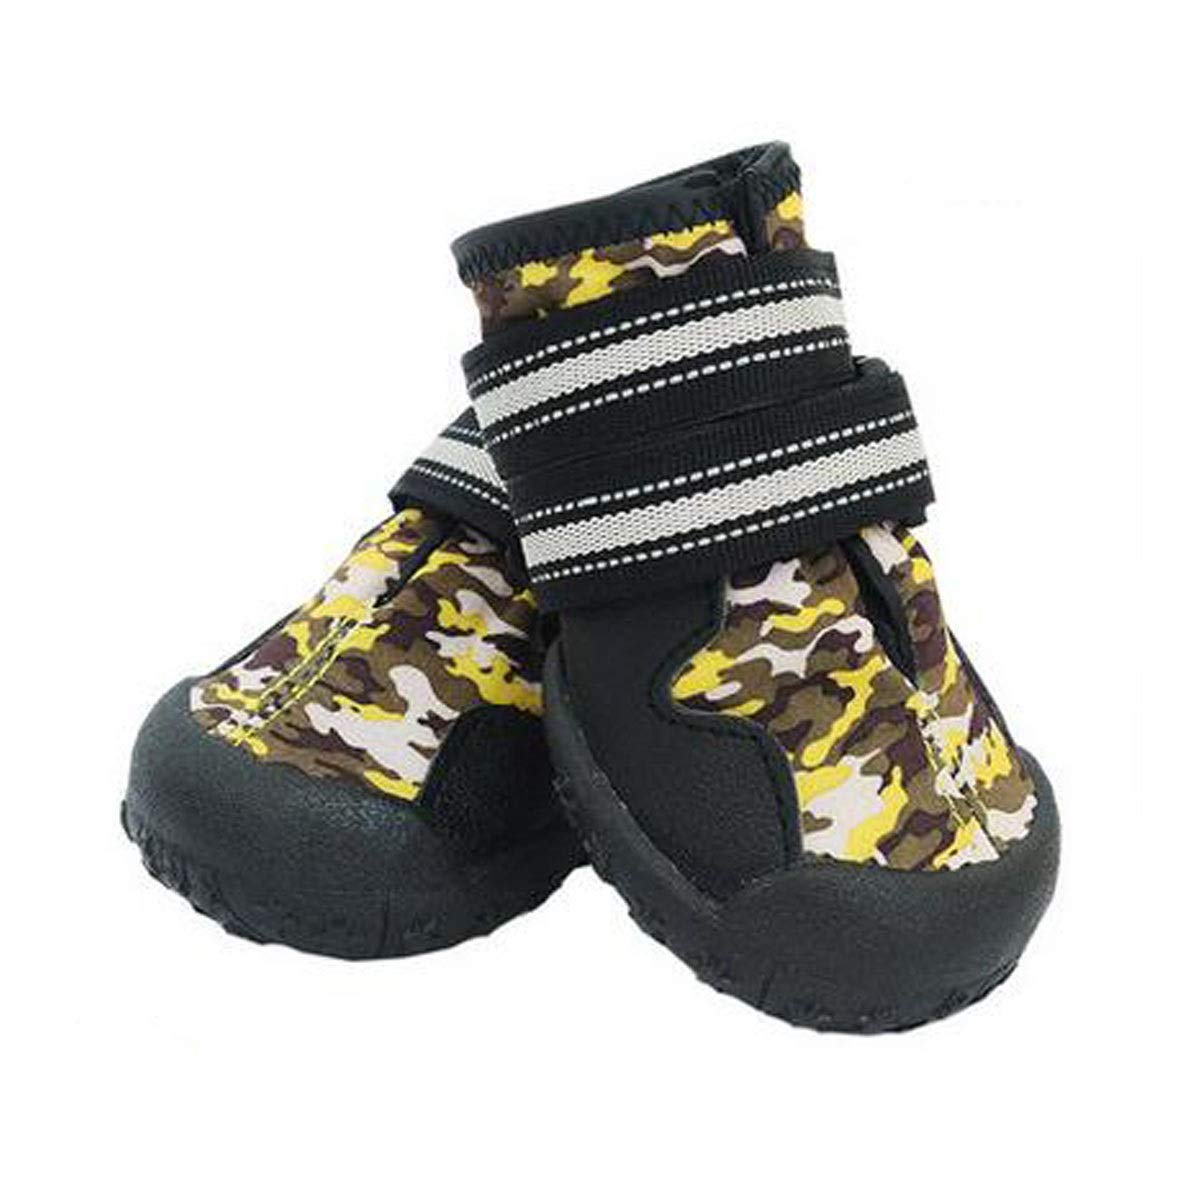 Camouflage yellow 4  Camouflage yellow 4  Dog shoes, Dog Rain Boots, Medium Dogs, Large Dog Waterproof shoes, Dog color Hiking shoes, Pet Supplies, Camouflage Yellow (4 -8 ) (color   Camouflage Yellow, Size   4 )